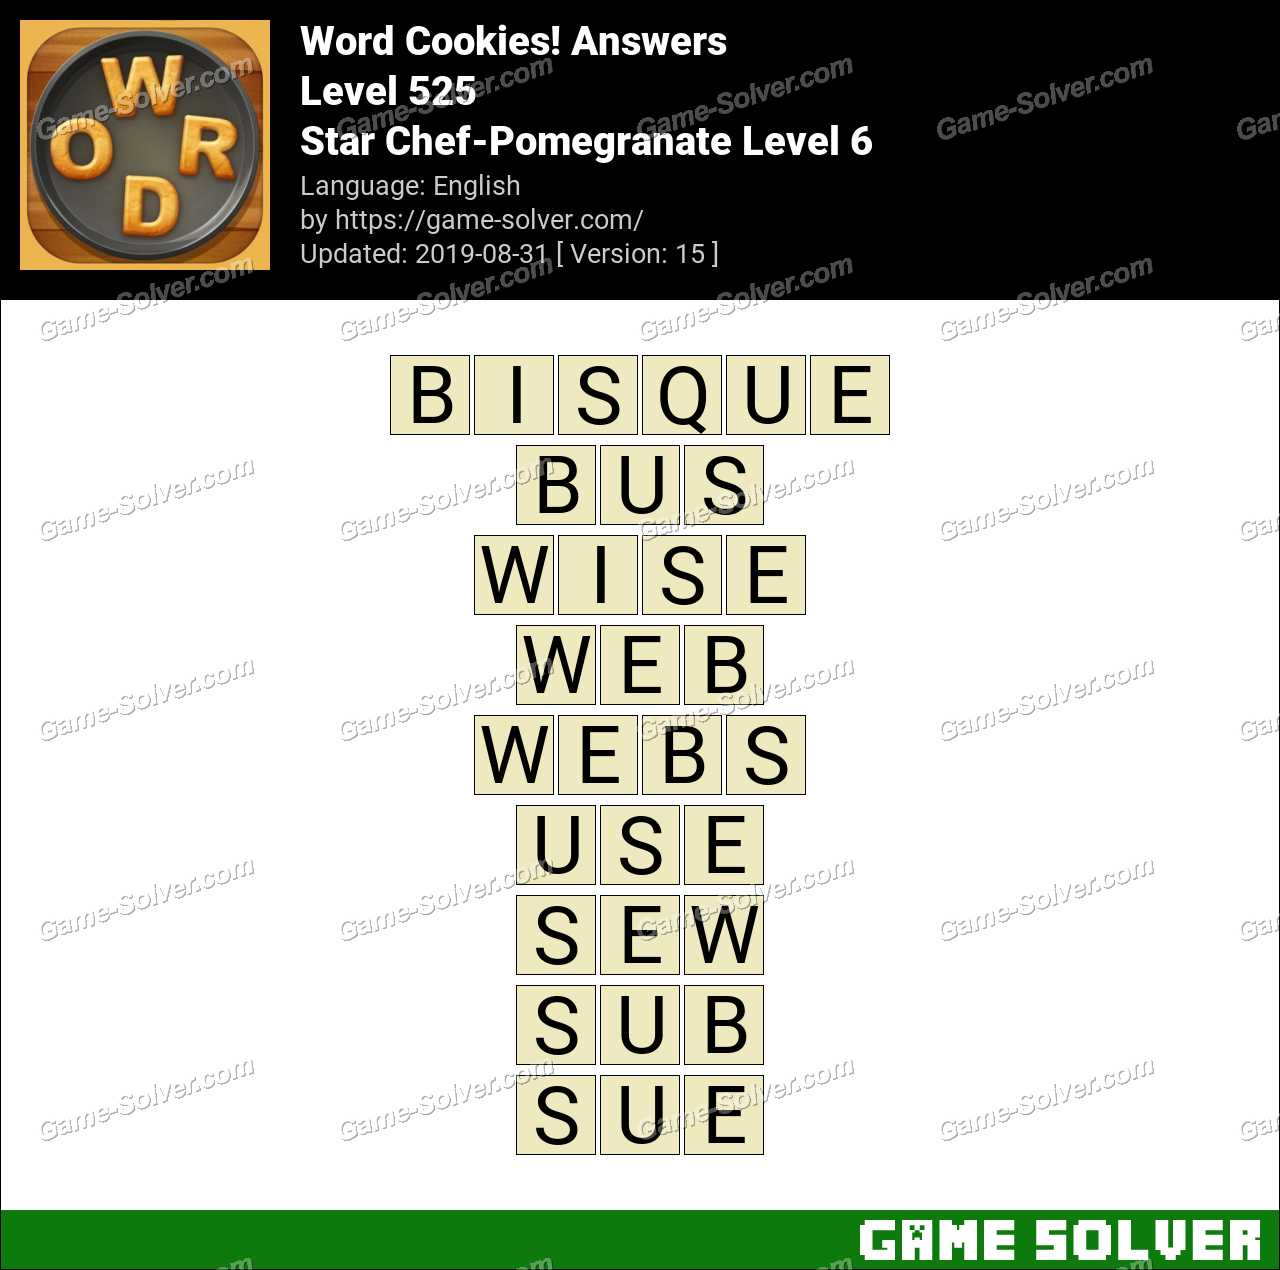 Word Cookies Star Chef-Pomegranate Level 6 Answers